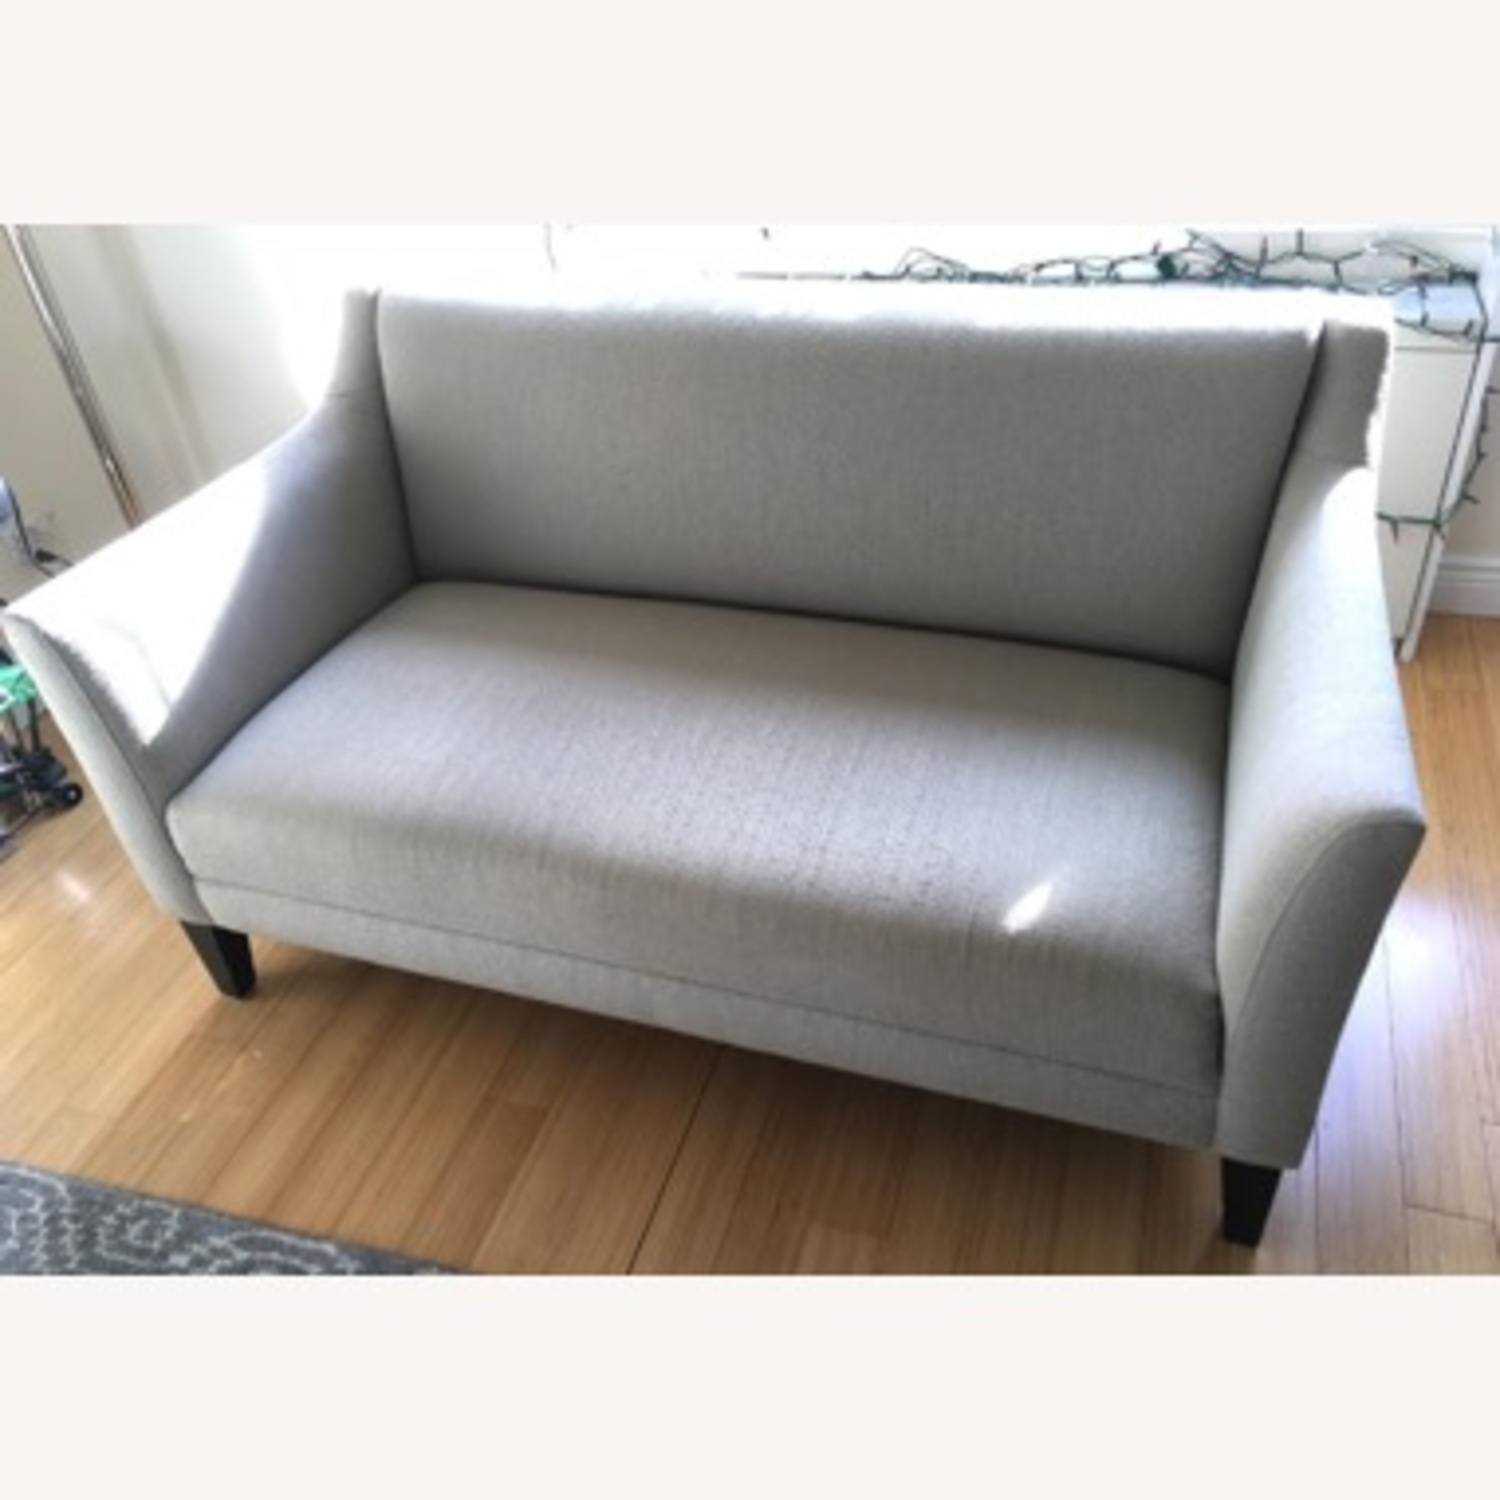 Crate & Barrel Loveseat - image-2